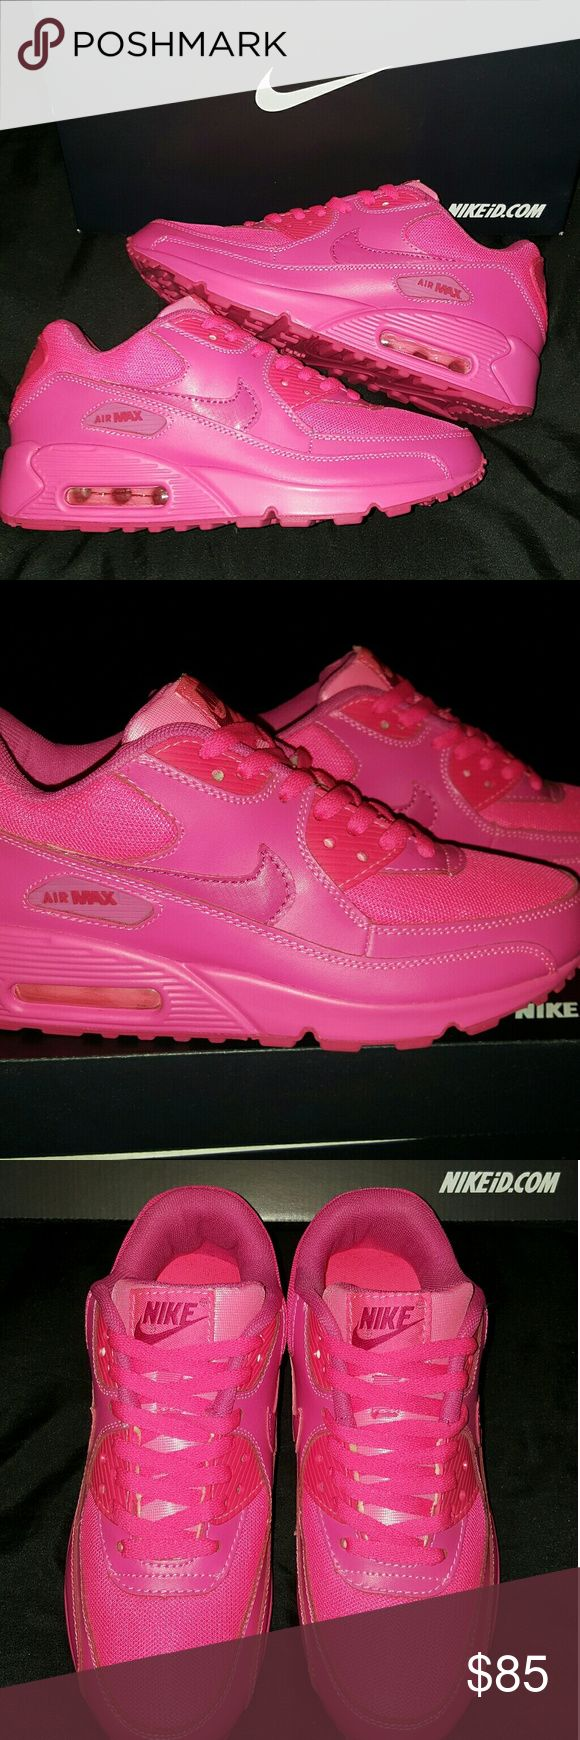 💥BRAND NEW NIKE ID HYPERFUSE AIR MAX 💥 Hot PINK Nike ID Air Max Hyperfuse. Rare color! Brand new, never worn.  Original box and still has tissue and original lacing. Super cute workout shoes!! Great comfortable sneakers!   *********************************** ✔ Same to Next day shipping!  ✔ Feel free to ask questions!   🚫 No trades, sorry!   🤗 Thank you for looking!  *********************************** Nike Shoes Sneakers